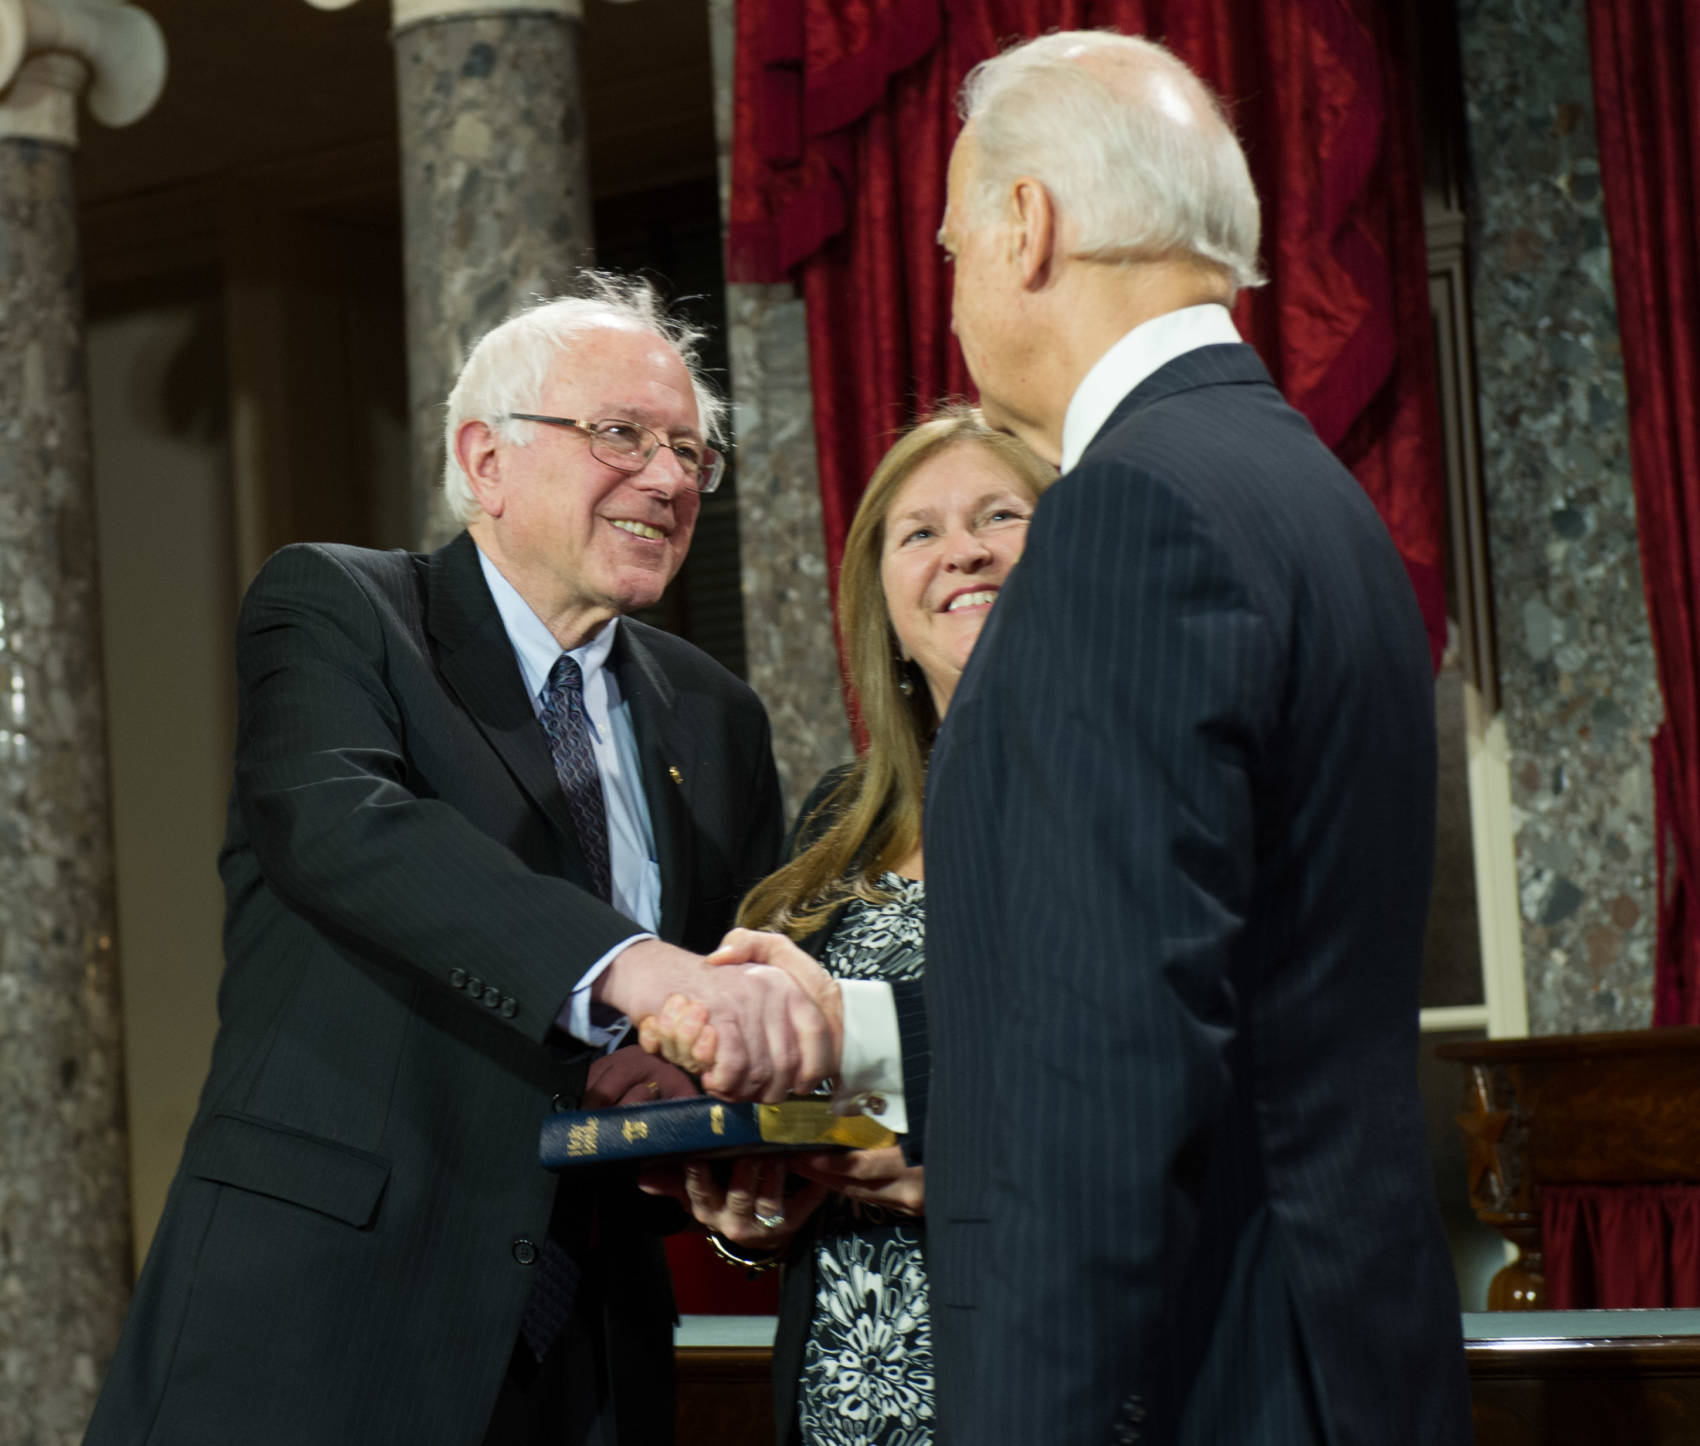 Sanders Wants To Move Progressive Ideas Forward With Biden, but CNN Analyst Finds His Supporters Won't Back Biden Unless He Adopts Some Sanders Policies